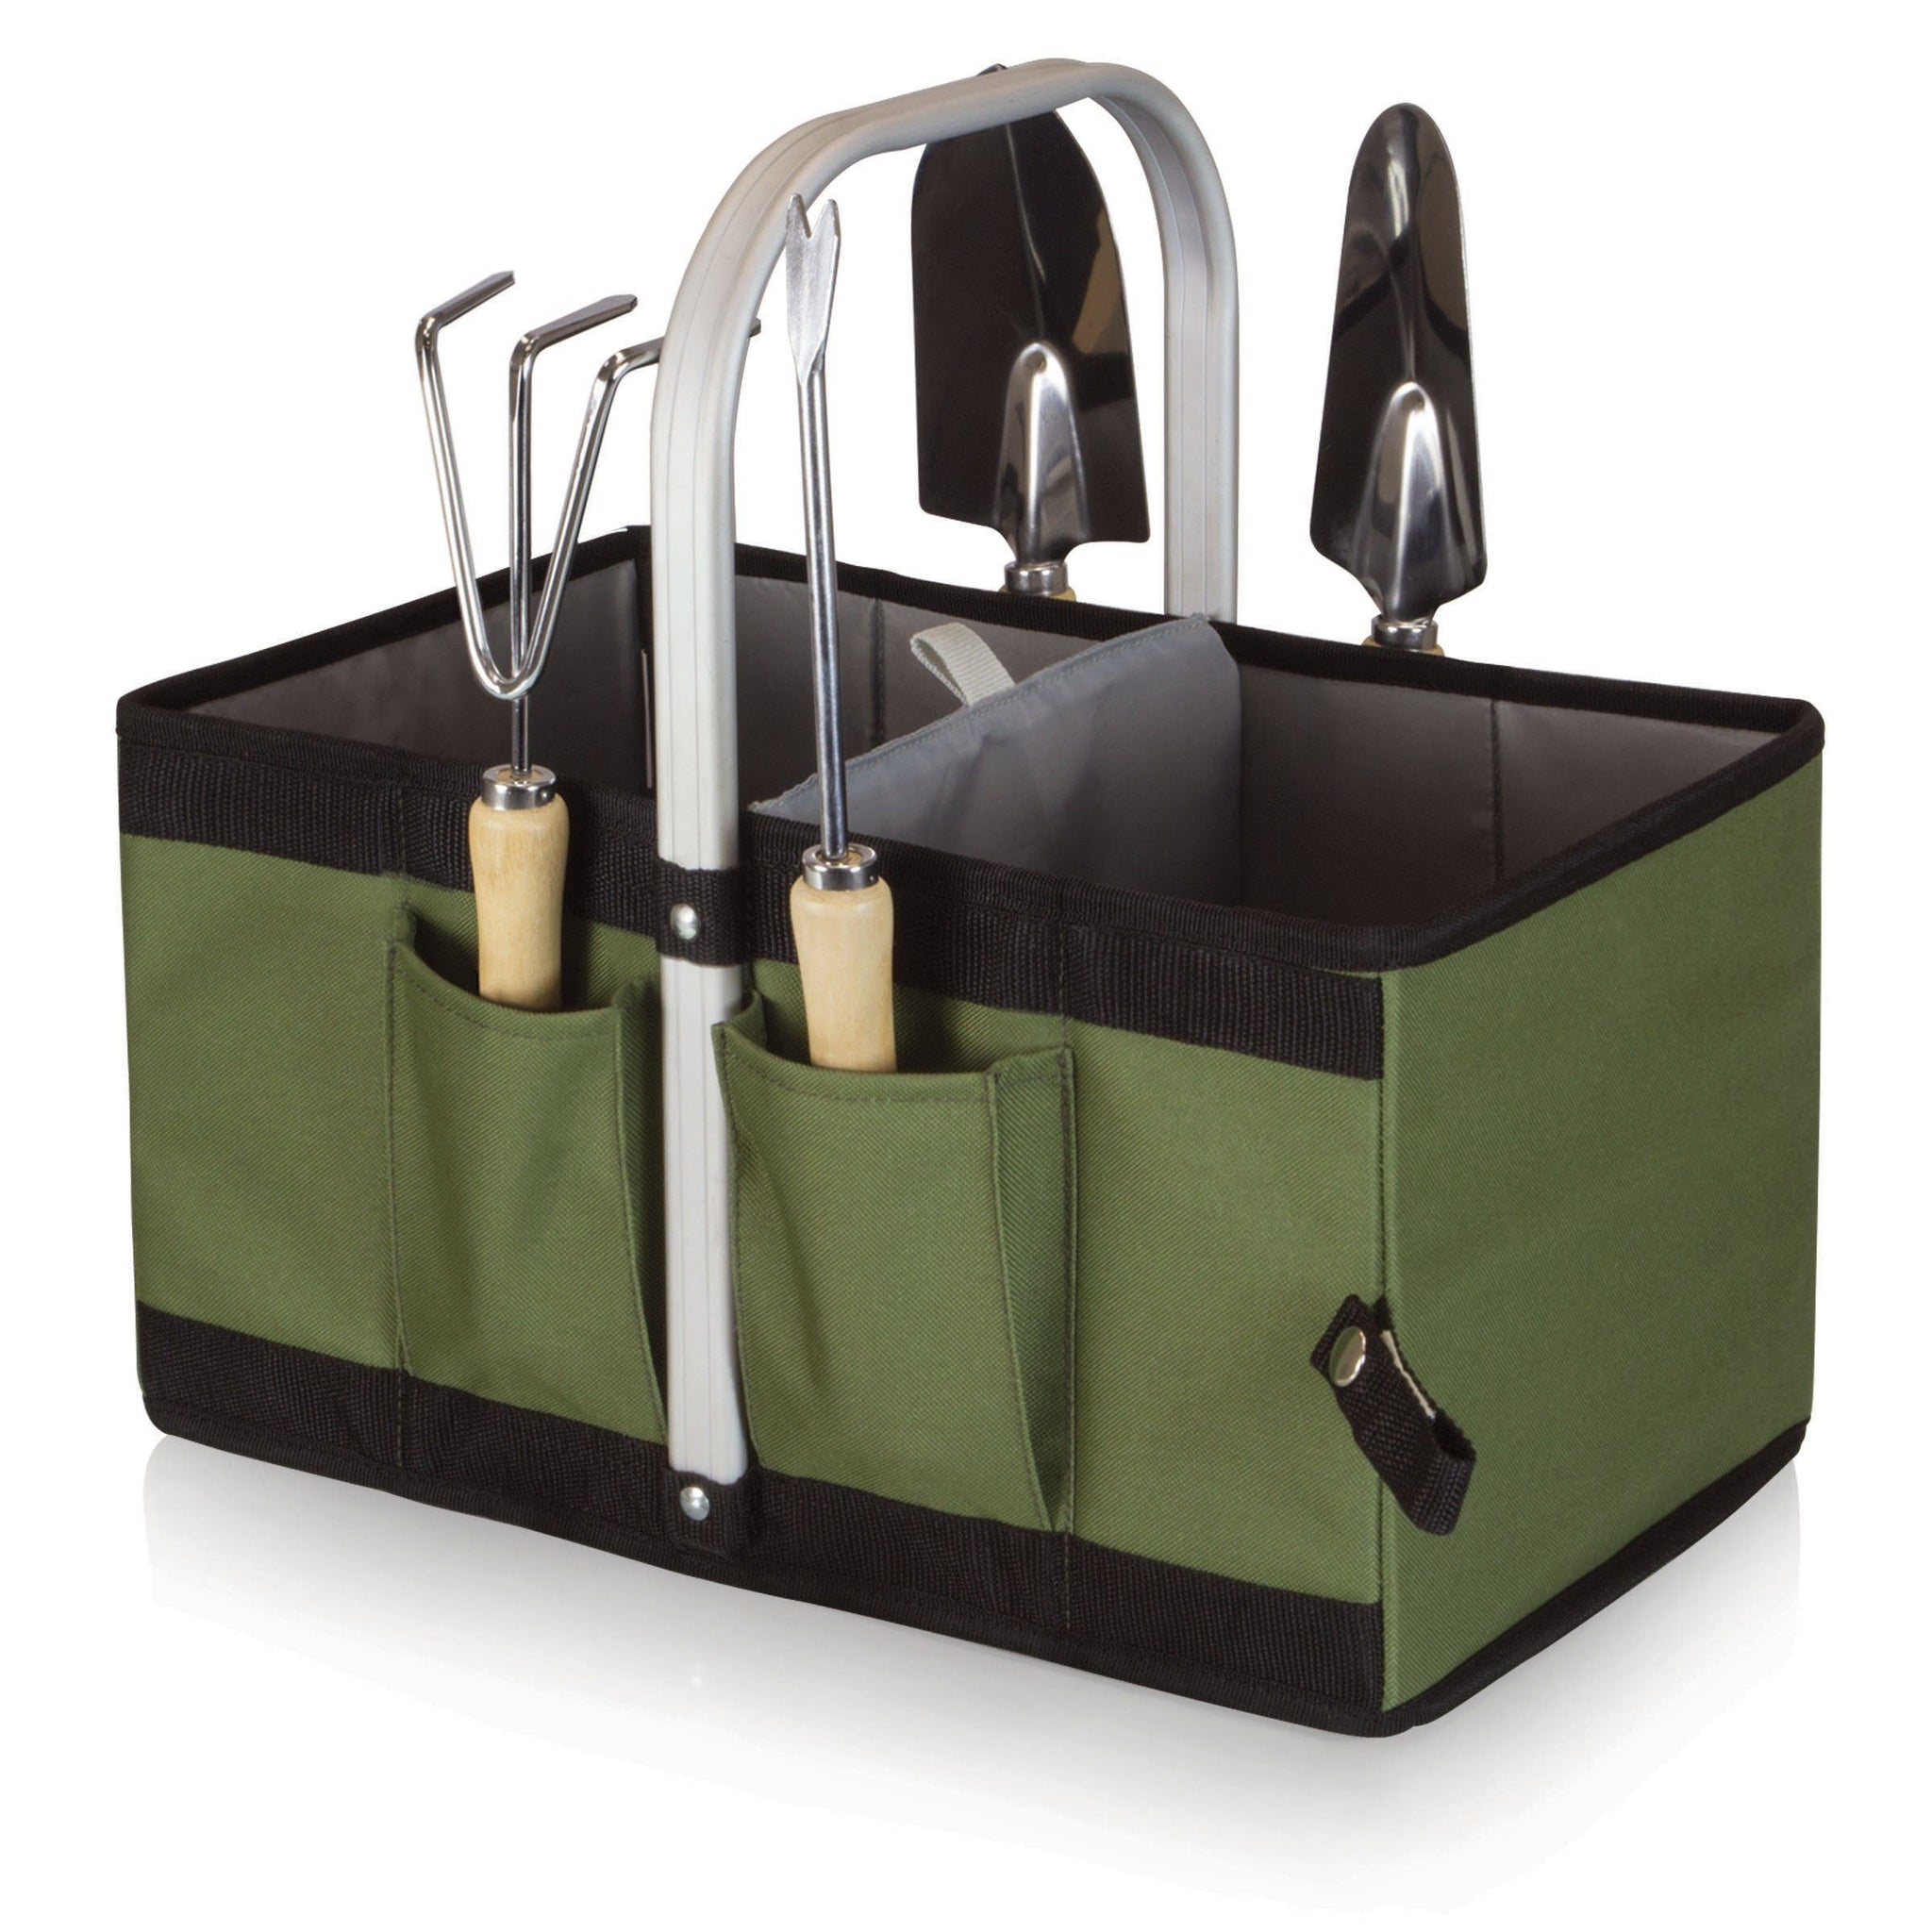 COLLAPSIBLE GARDEN CADDY BASKET WITH TOOLS - Grogans Mill Gifts